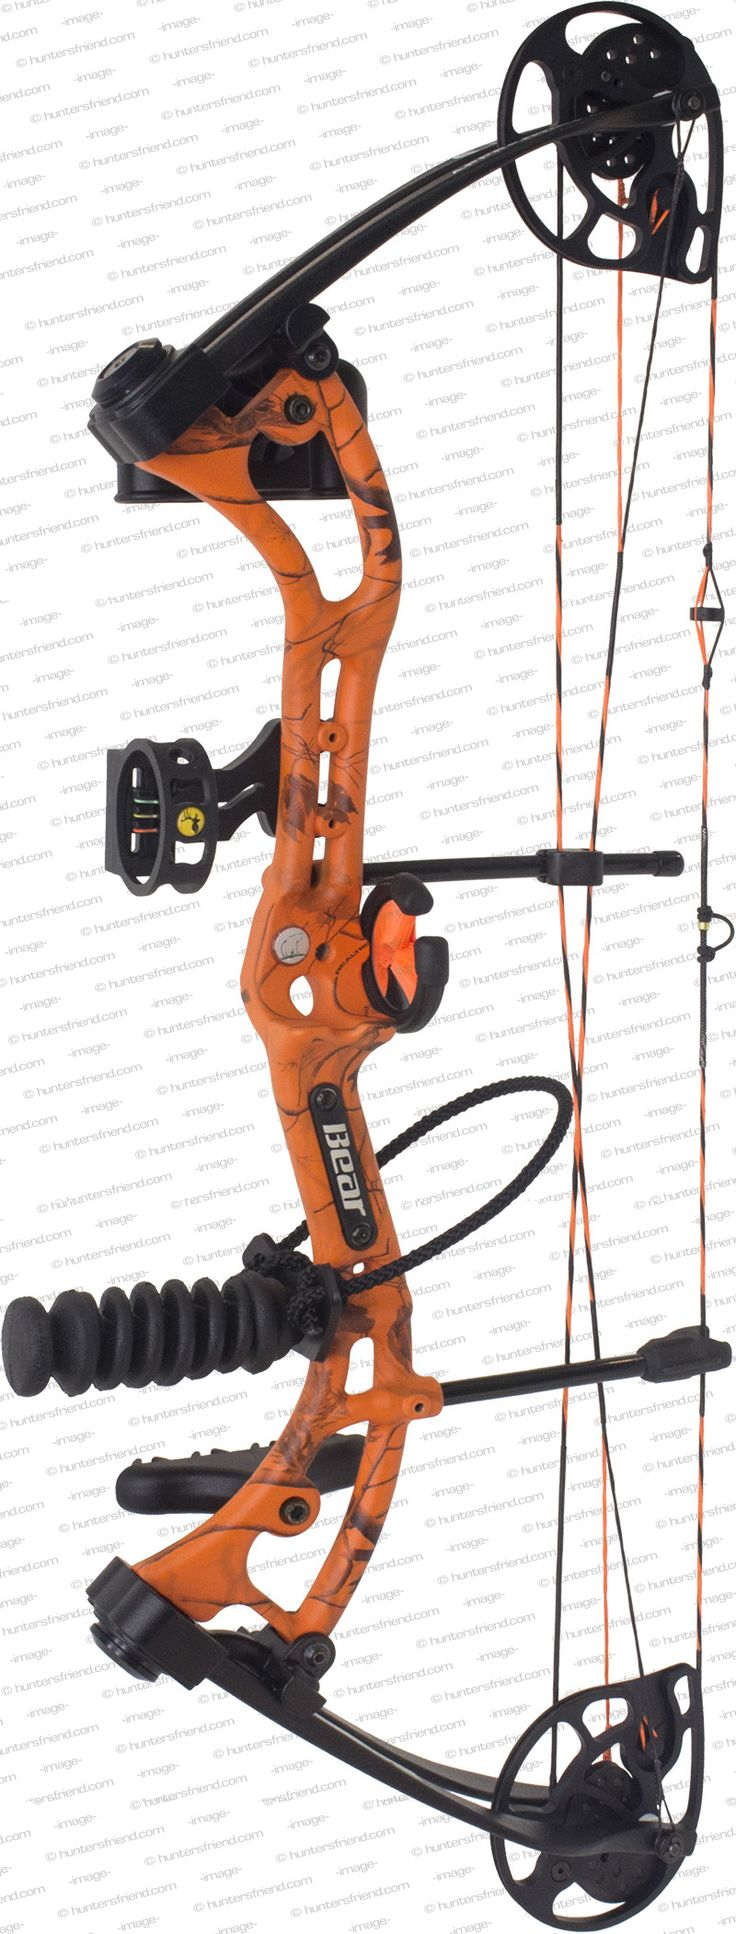 bear apprentice III compound bow kit in orange camo